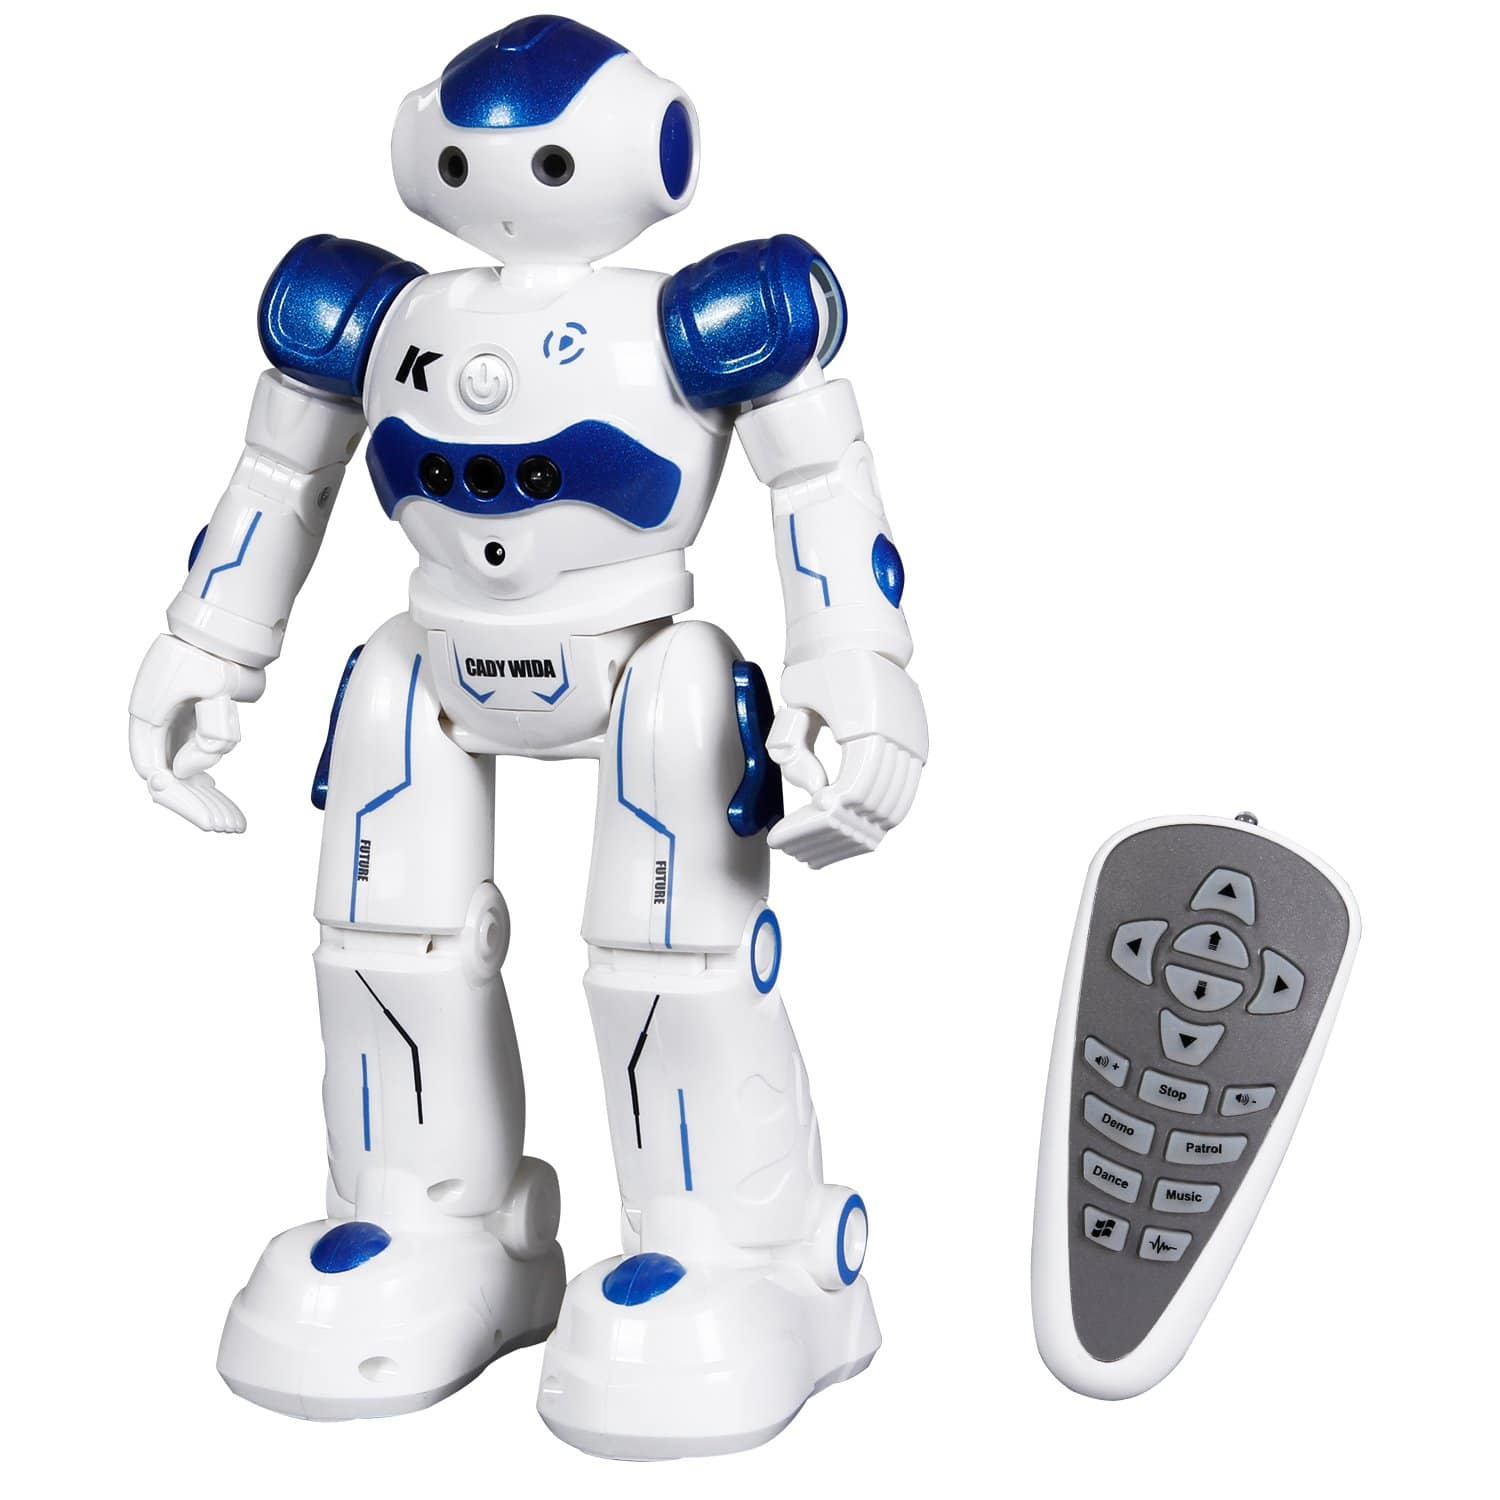 Toch RC Robot Toy, Programmable Smart Infrared Sensing Robot for Kids Birthday Gift Present $22.09 Free Shipping